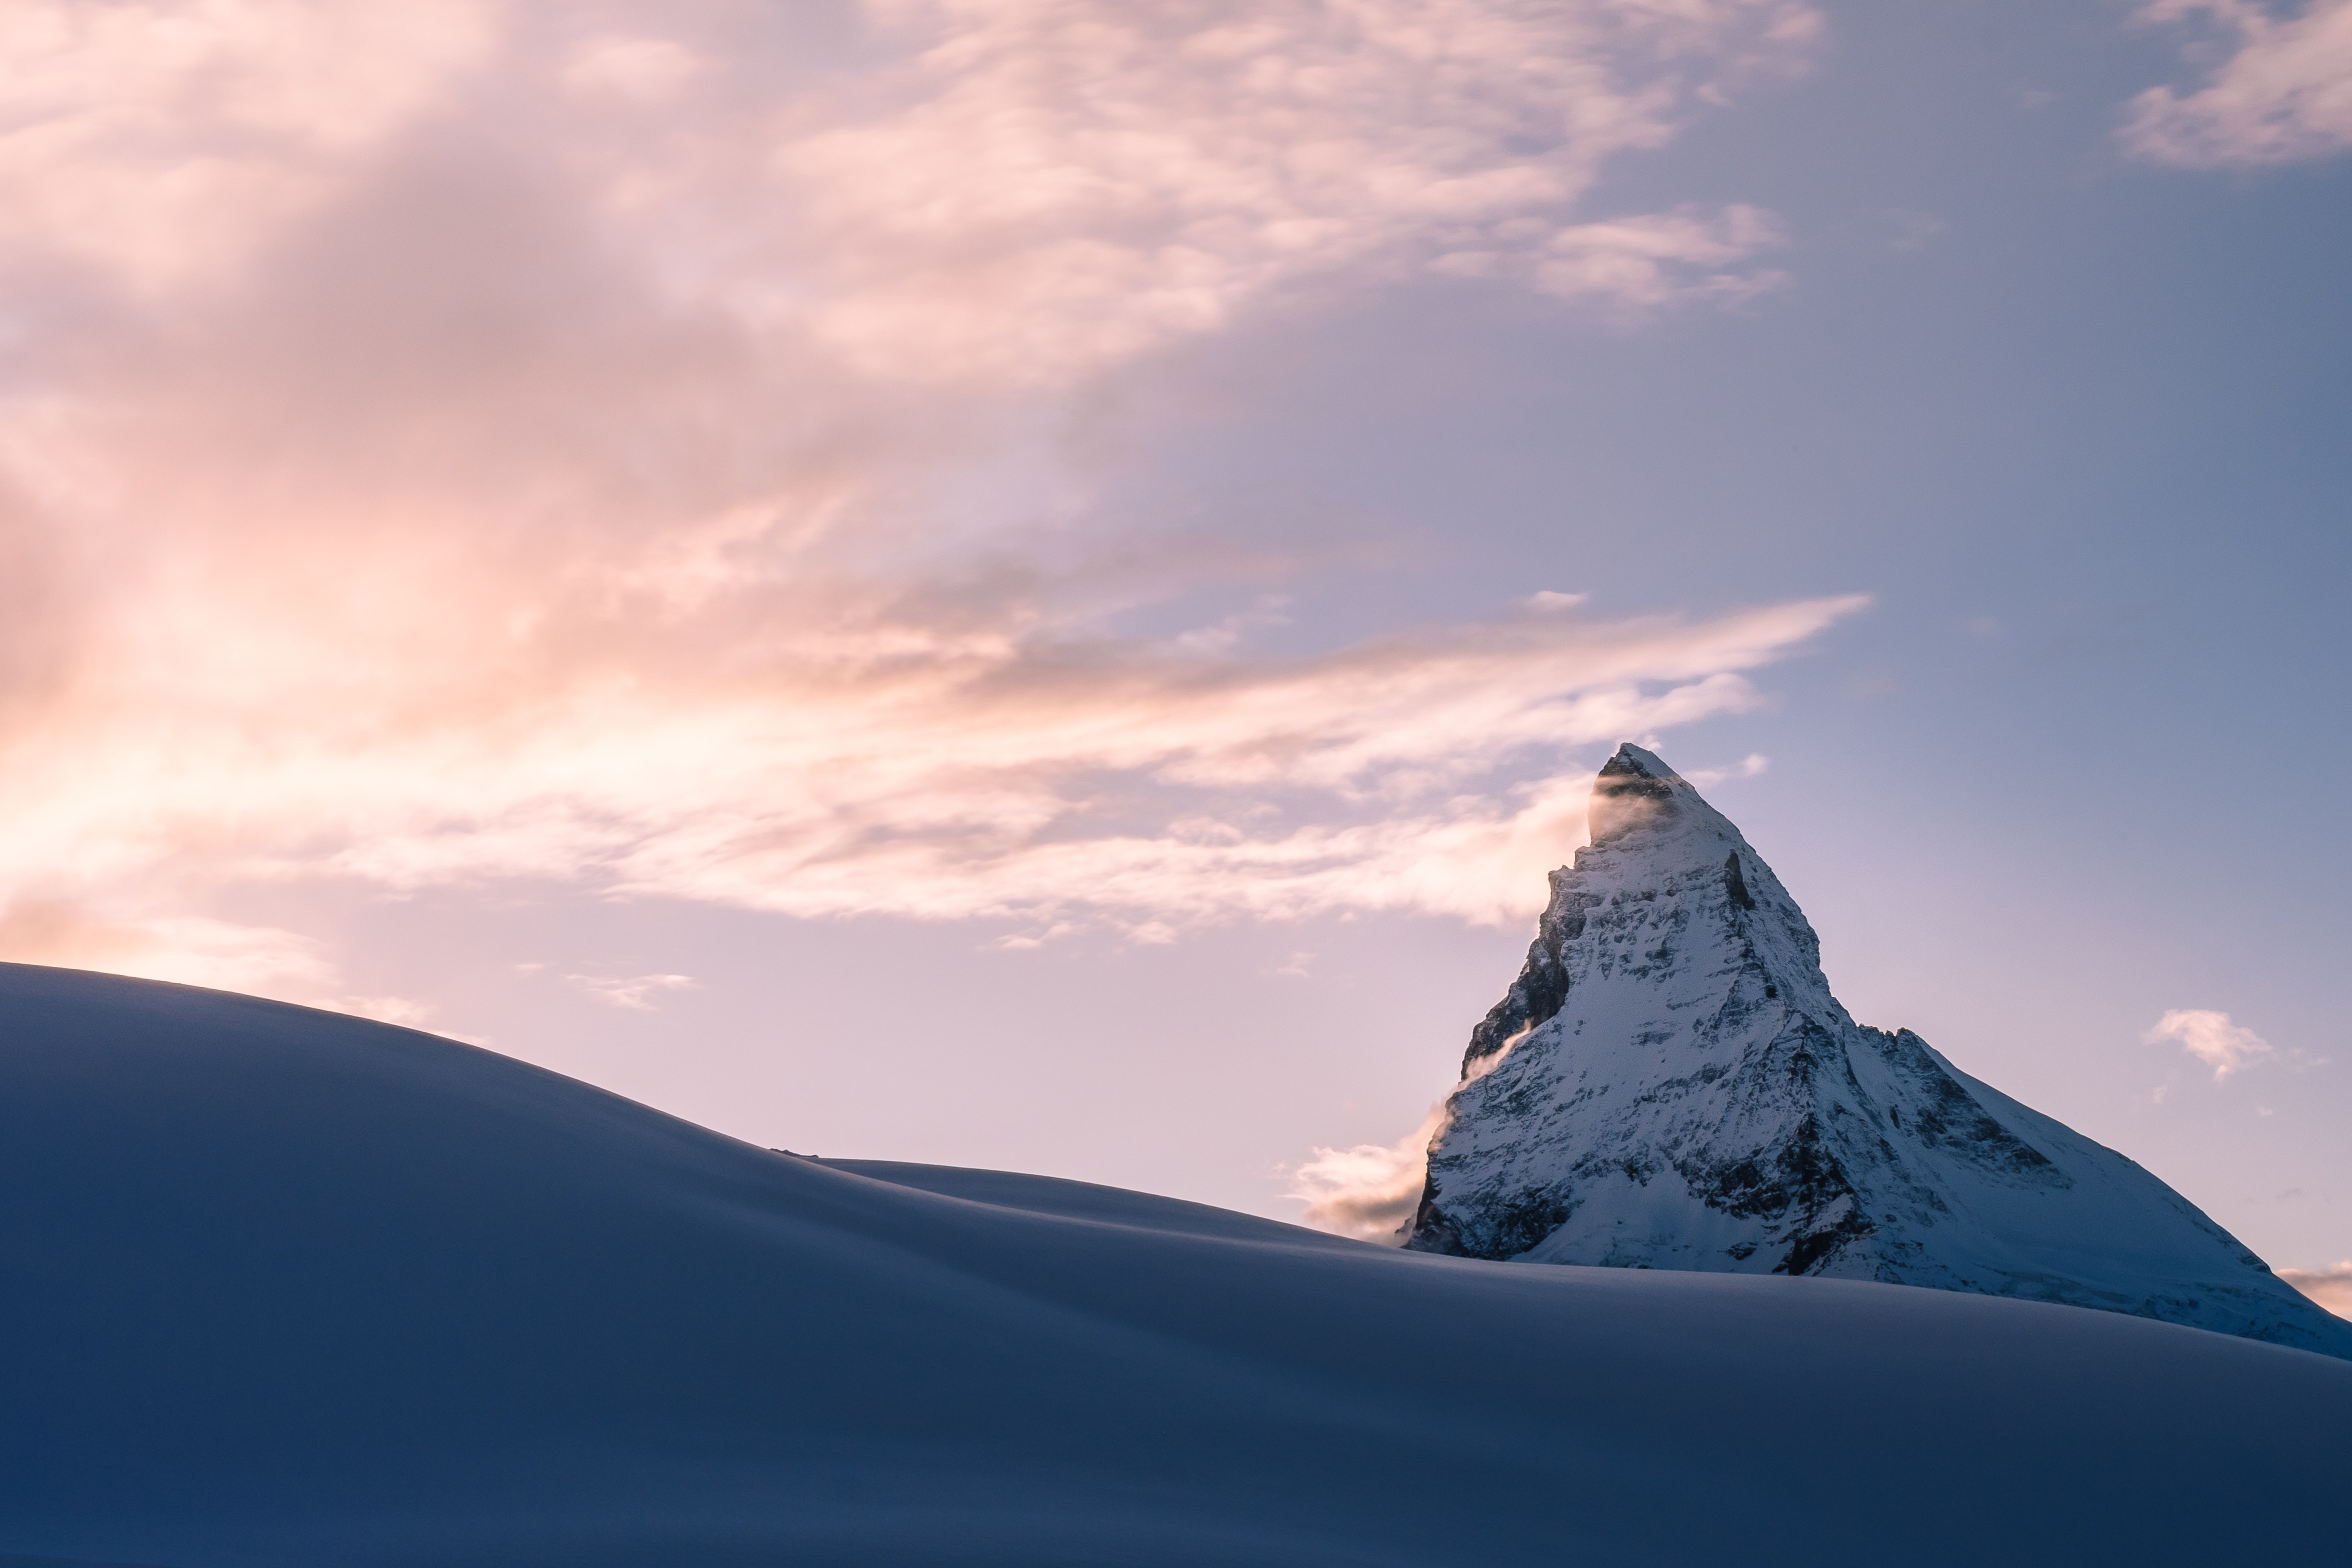 A snowy mountain peak extends towards the sky during a sunset or sunrise